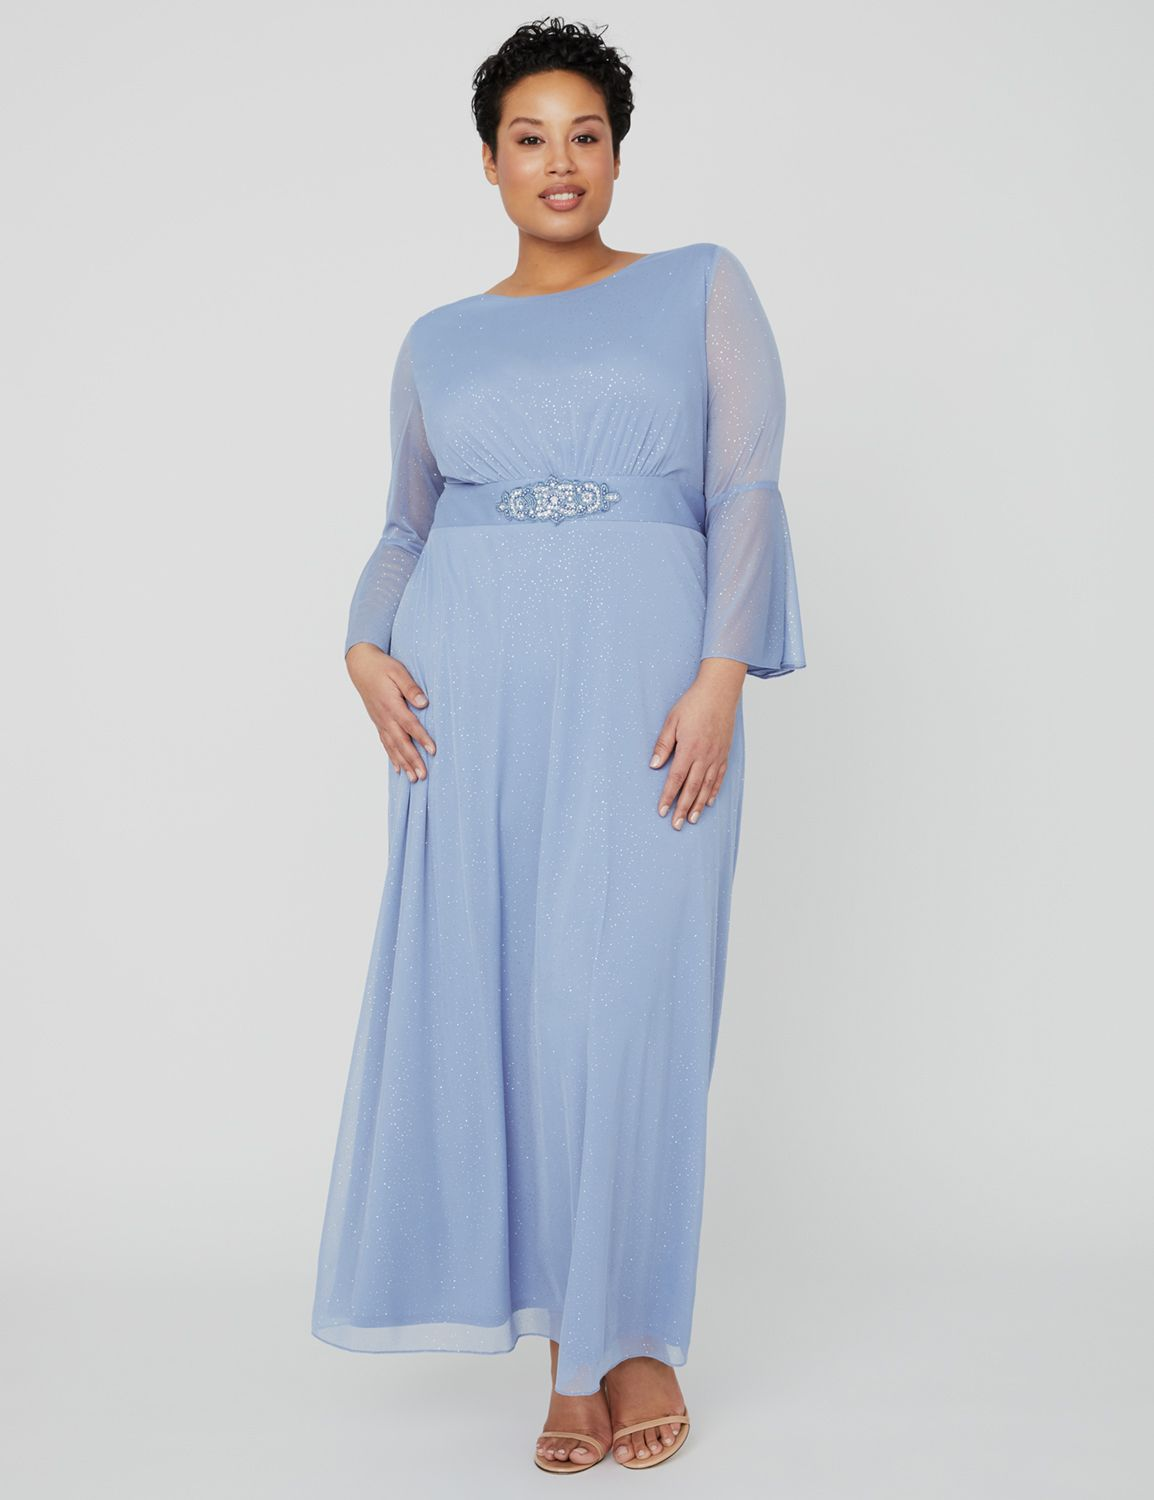 Twilight Sky Gown 1090991 Empire Waist Dress with Wai MP-300099842